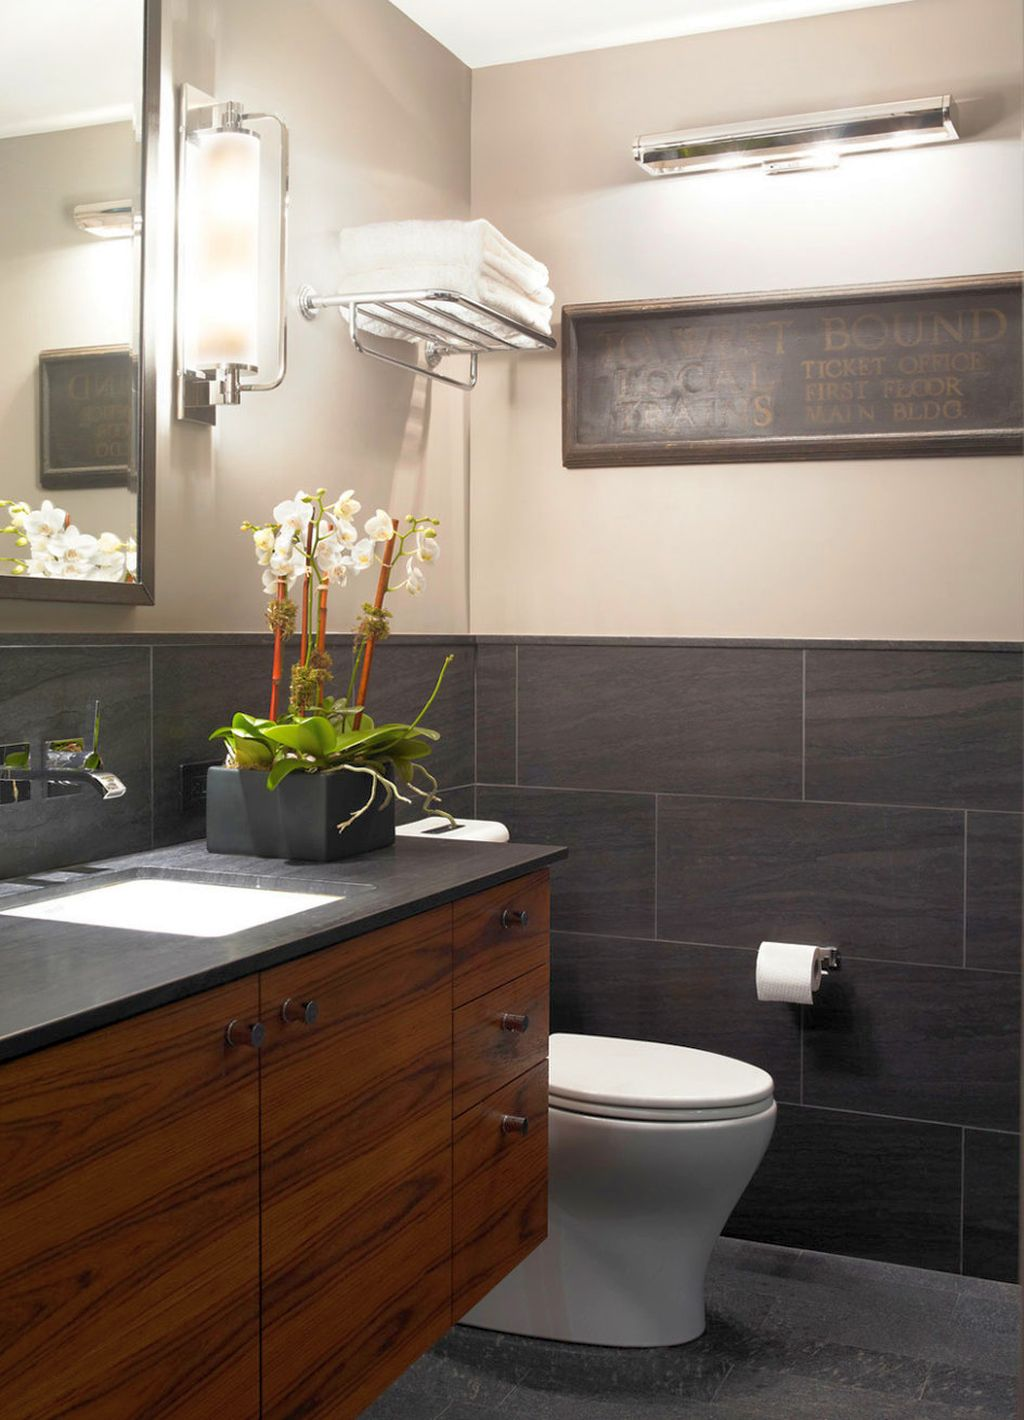 Tiny Bathroom Design Ideas In Black And White With Rustic